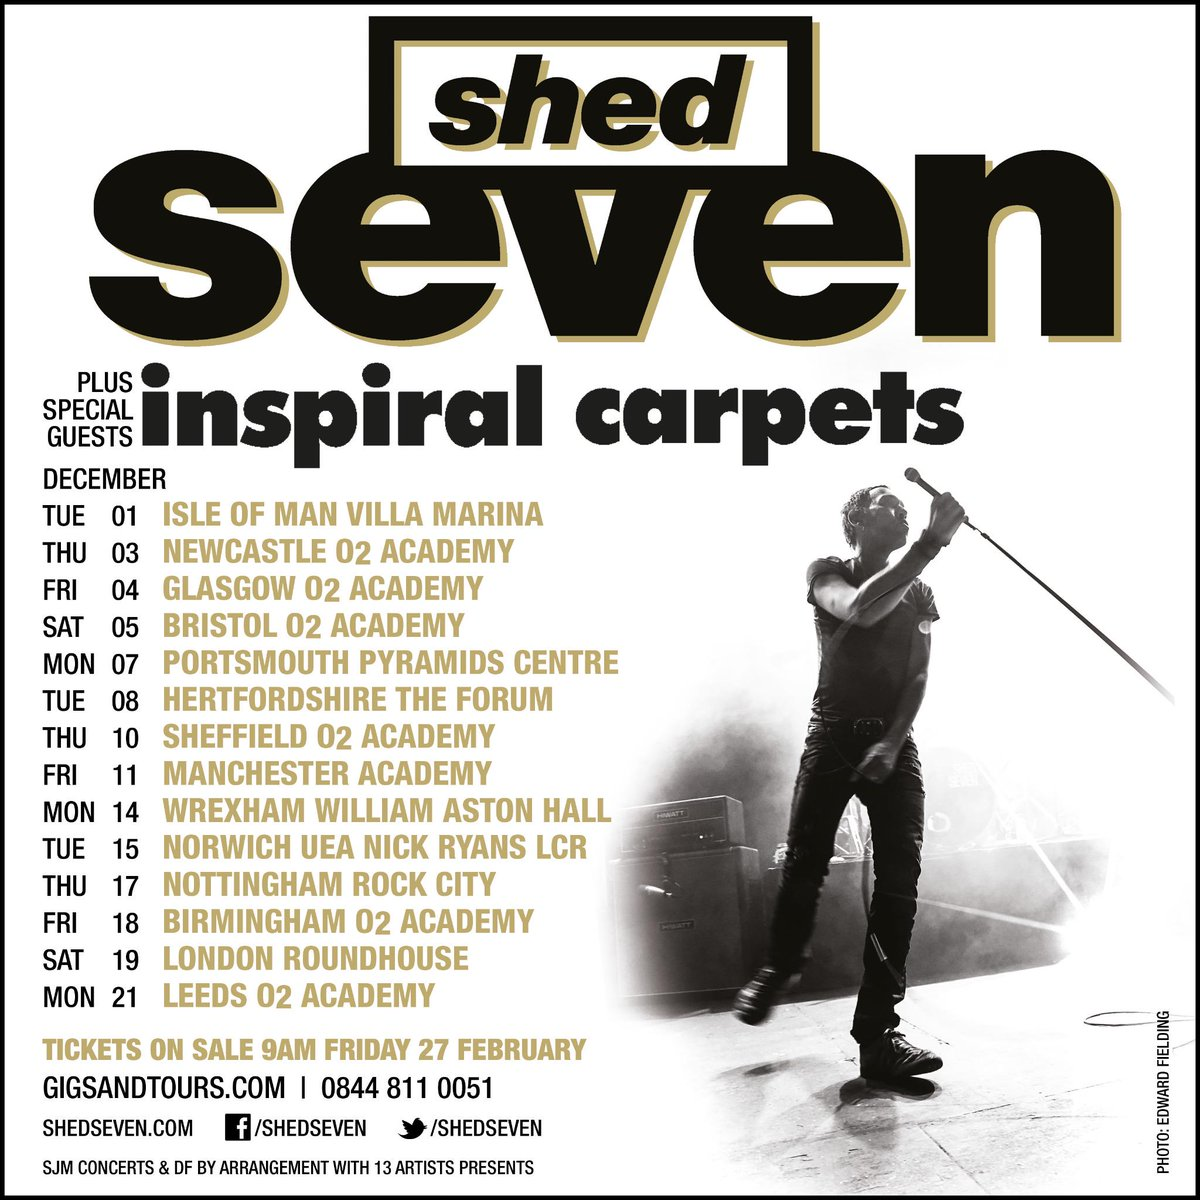 DECEMBER 2015 TOUR with guests INSPIRAL CARPETS: Back on the road again! Full details at http://t.co/PJLcPtMiZU http://t.co/9BWj4g46mG